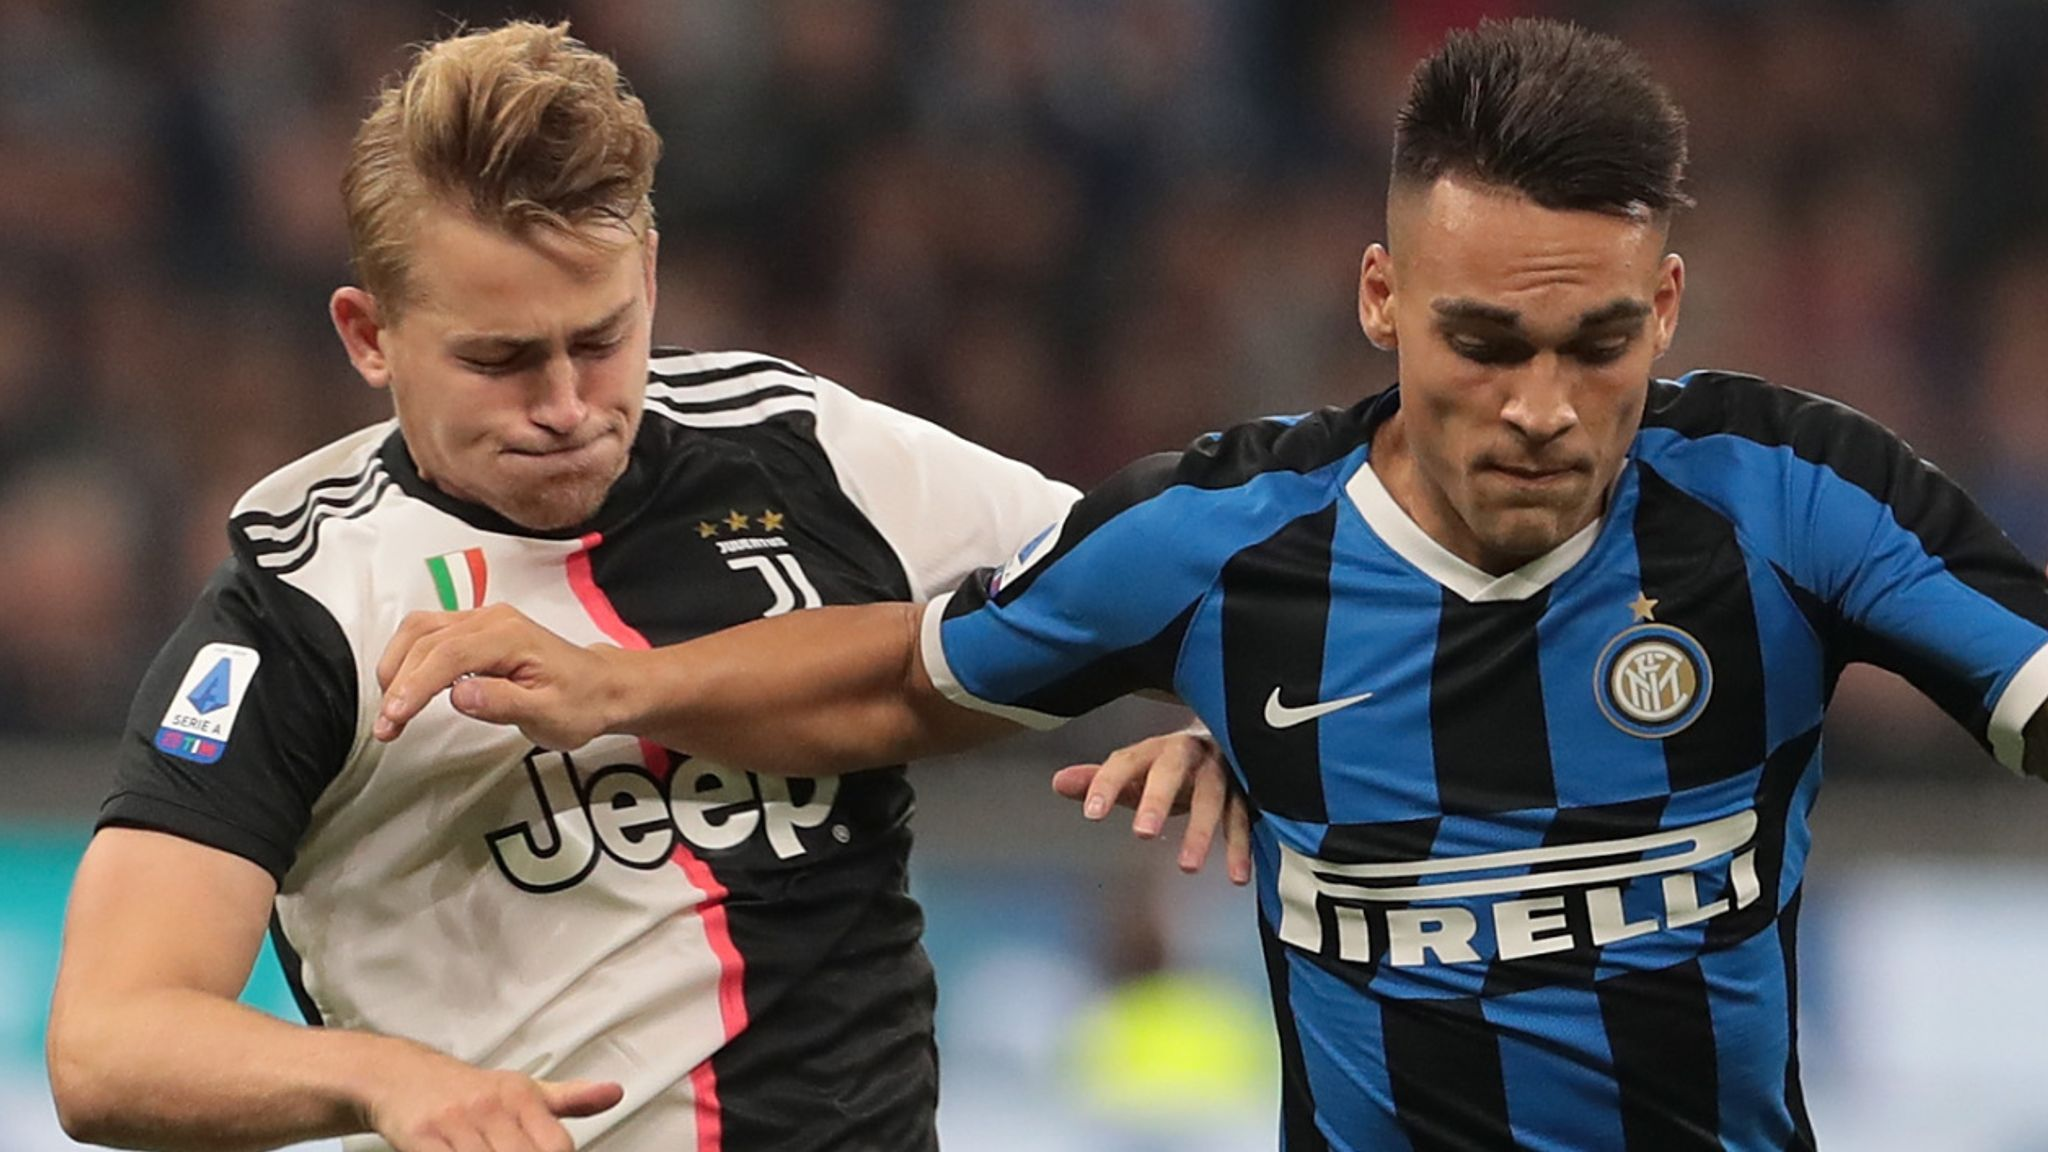 Coronavirus Juventus Vs Inter Milan Among Five Serie A Matches To Be Played Behind Closed Doors Football News Sky Sports